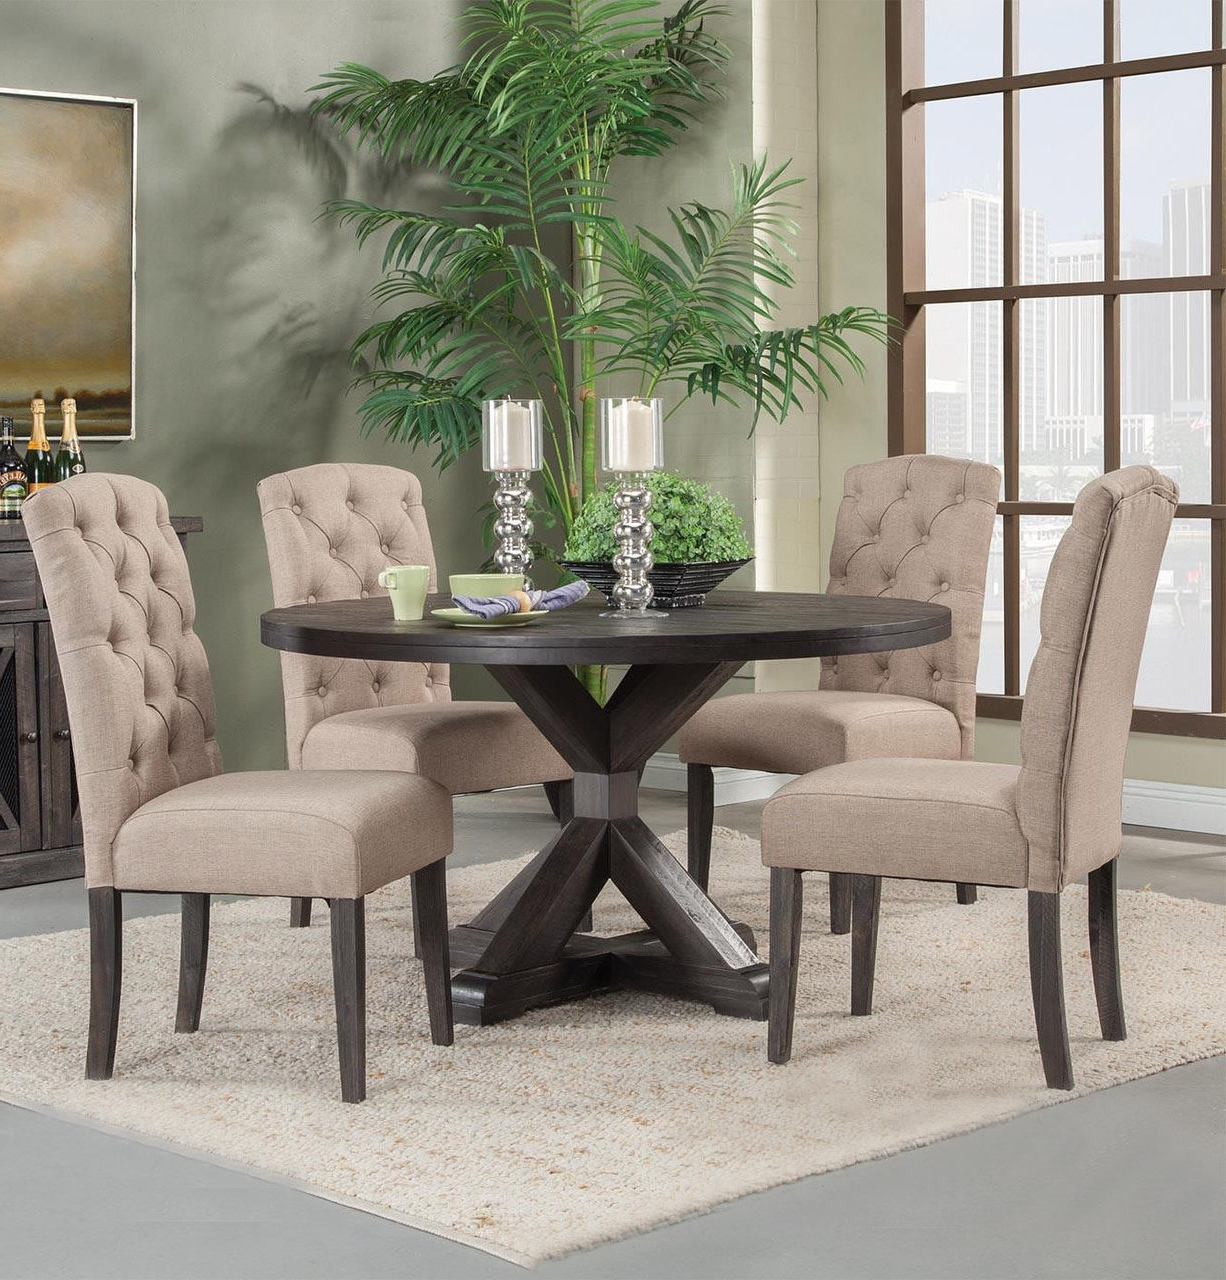 Well Known Circle Dining Tables Pertaining To Good Looking White Round Dining Room Table And Chairs Extending (View 25 of 25)